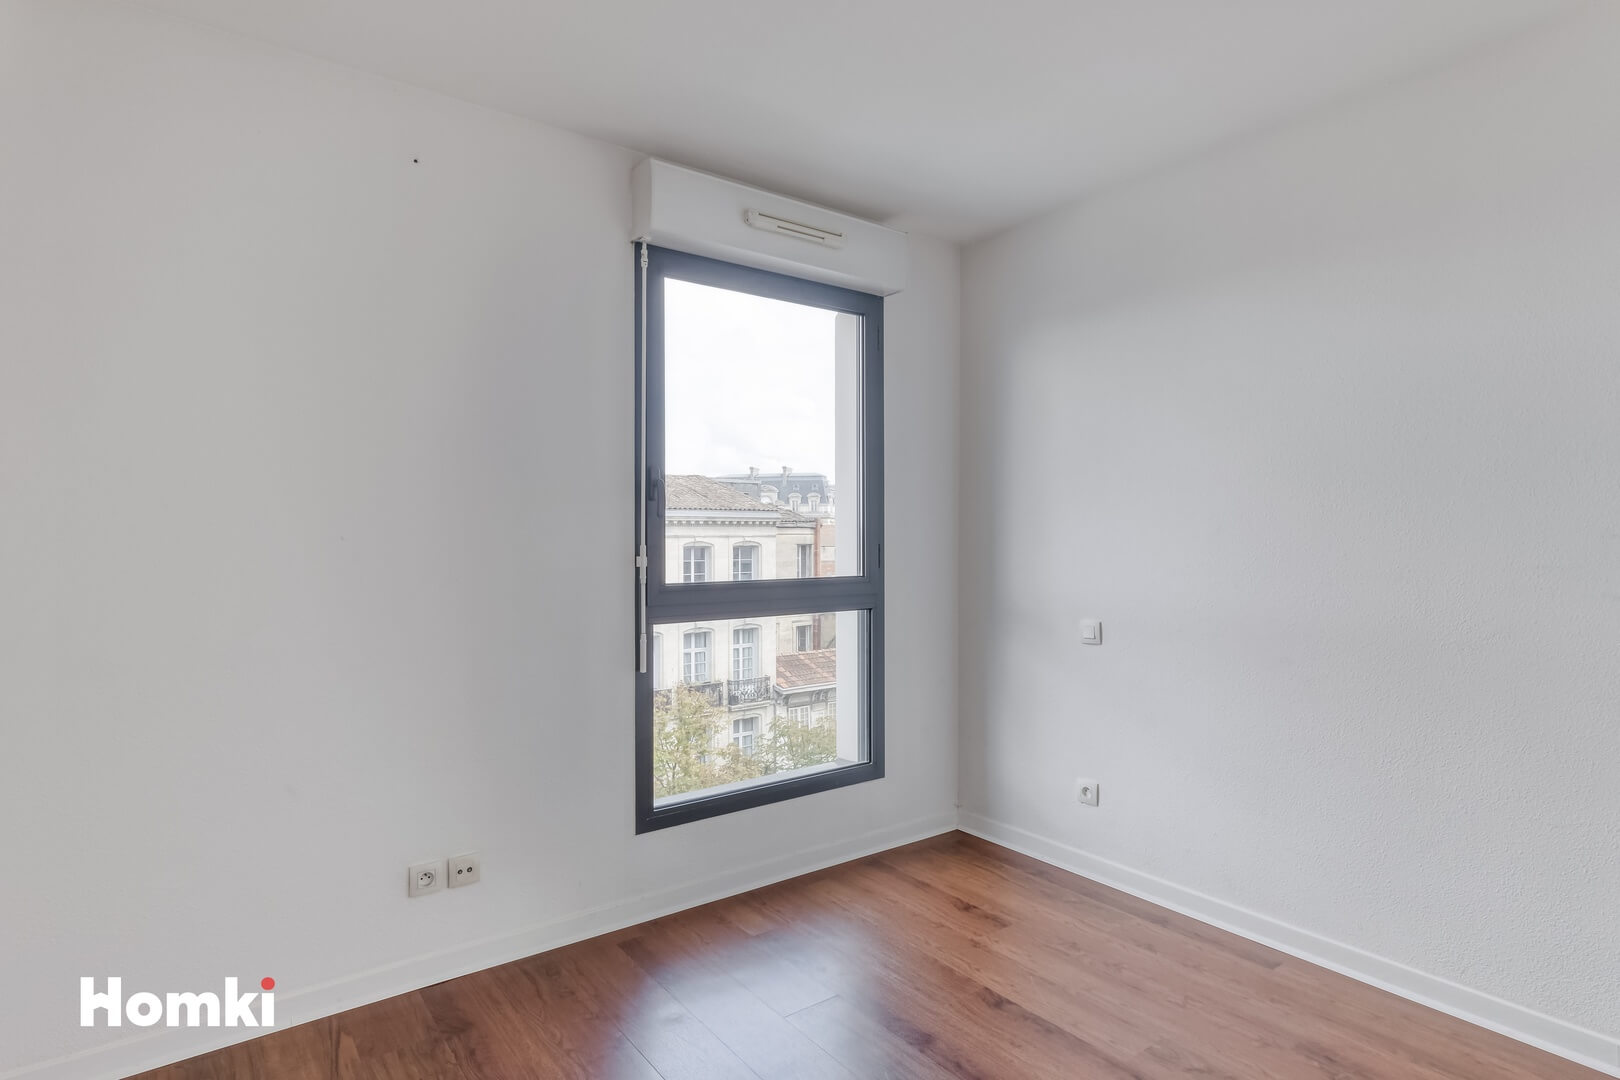 Homki - Vente Appartement  de 75.8 m² à Bordeaux 33800